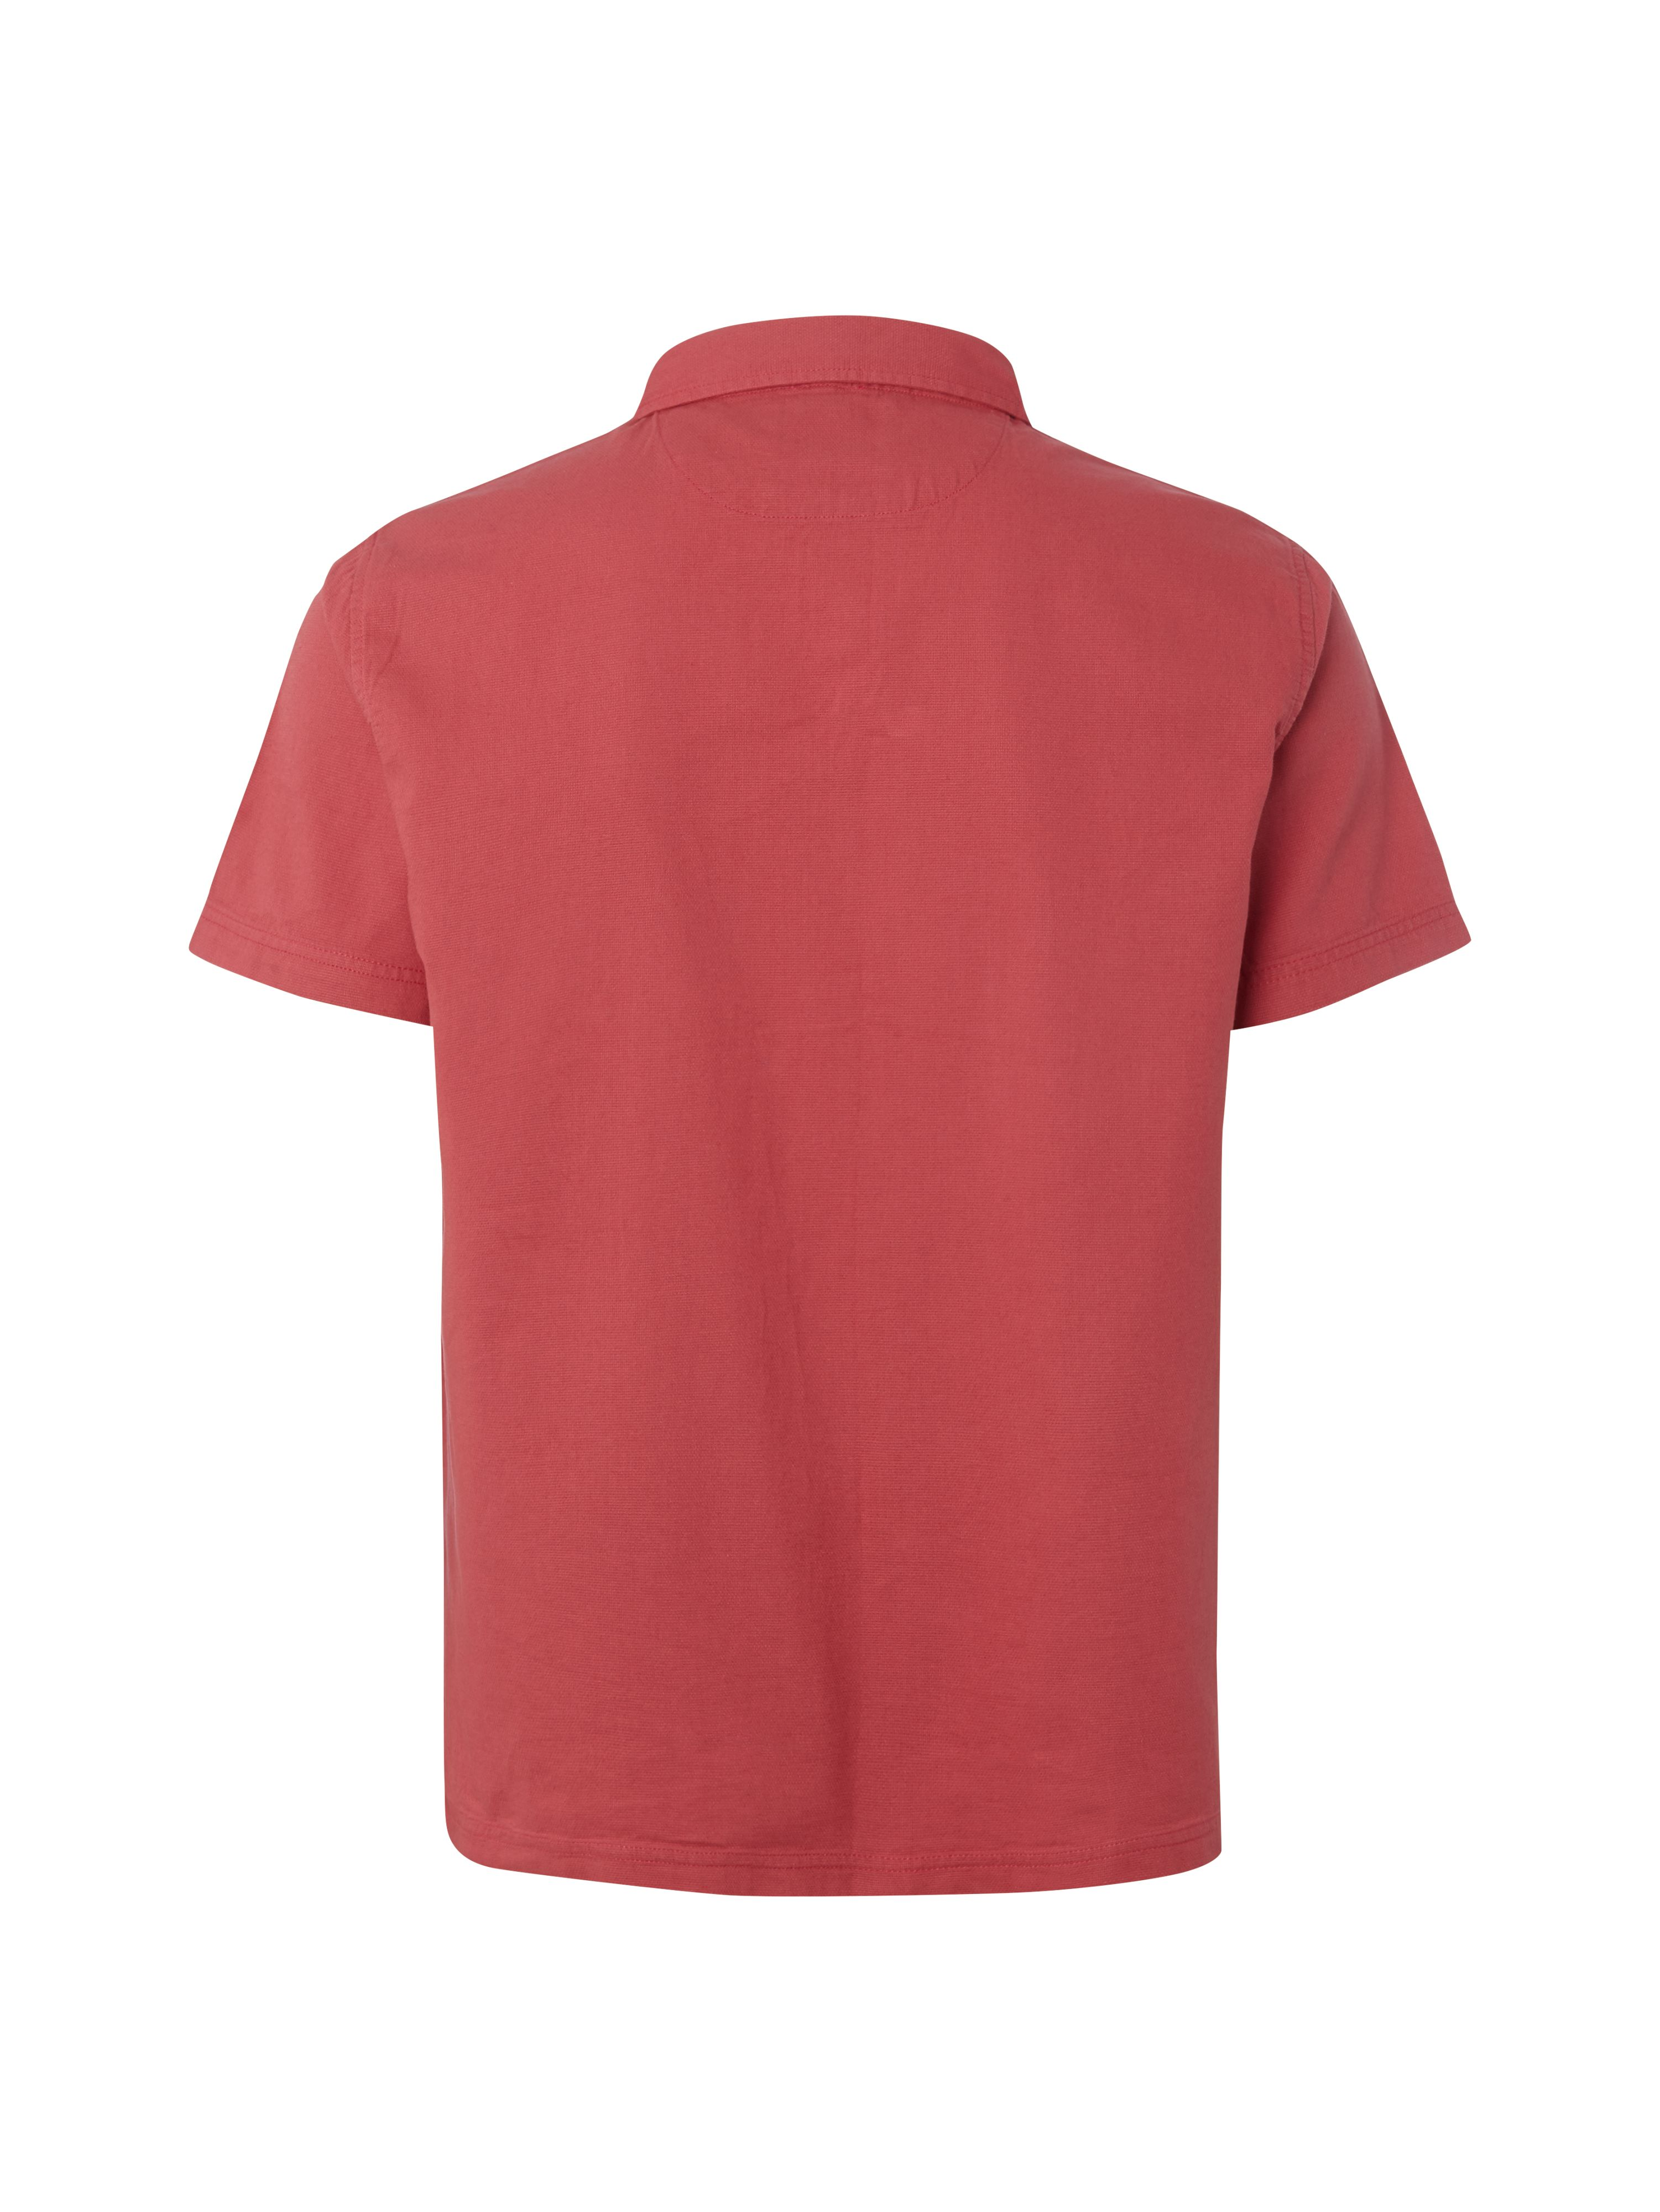 Microtape polo shirt